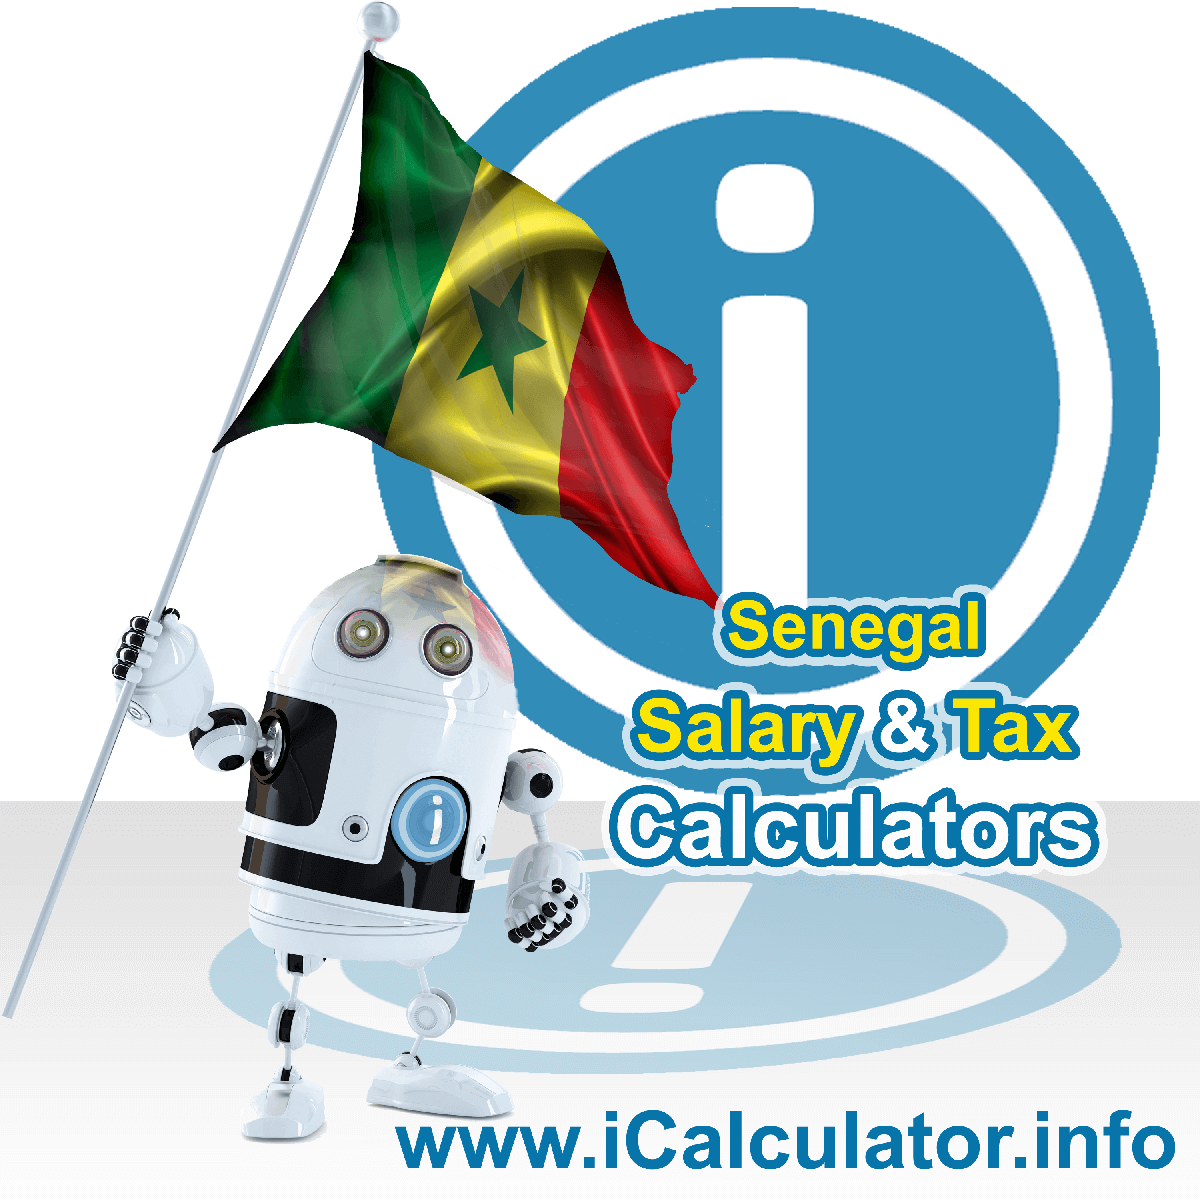 Senegal Tax Calculator. This image shows the Senegal flag and information relating to the tax formula for the Senegal Salary Calculator